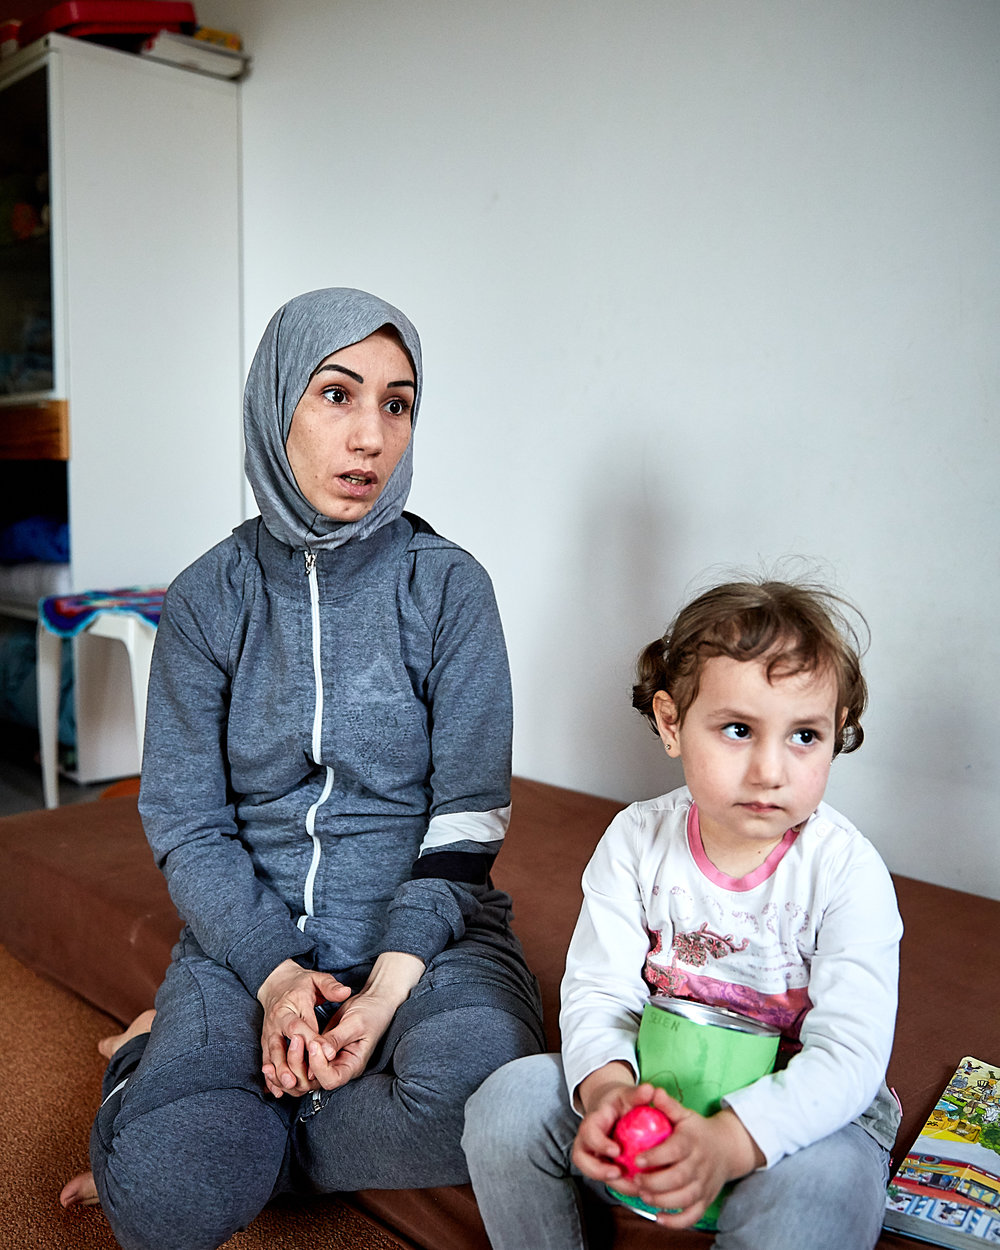 Wafaa Farok, who came from the besieged al-Qadam district of Damascus with her handicapped husband and their two toddlers, is living in dedicated refugee housing in Kaufbeuren and struggling to find permanent housing because of prejudices against renting to refugees